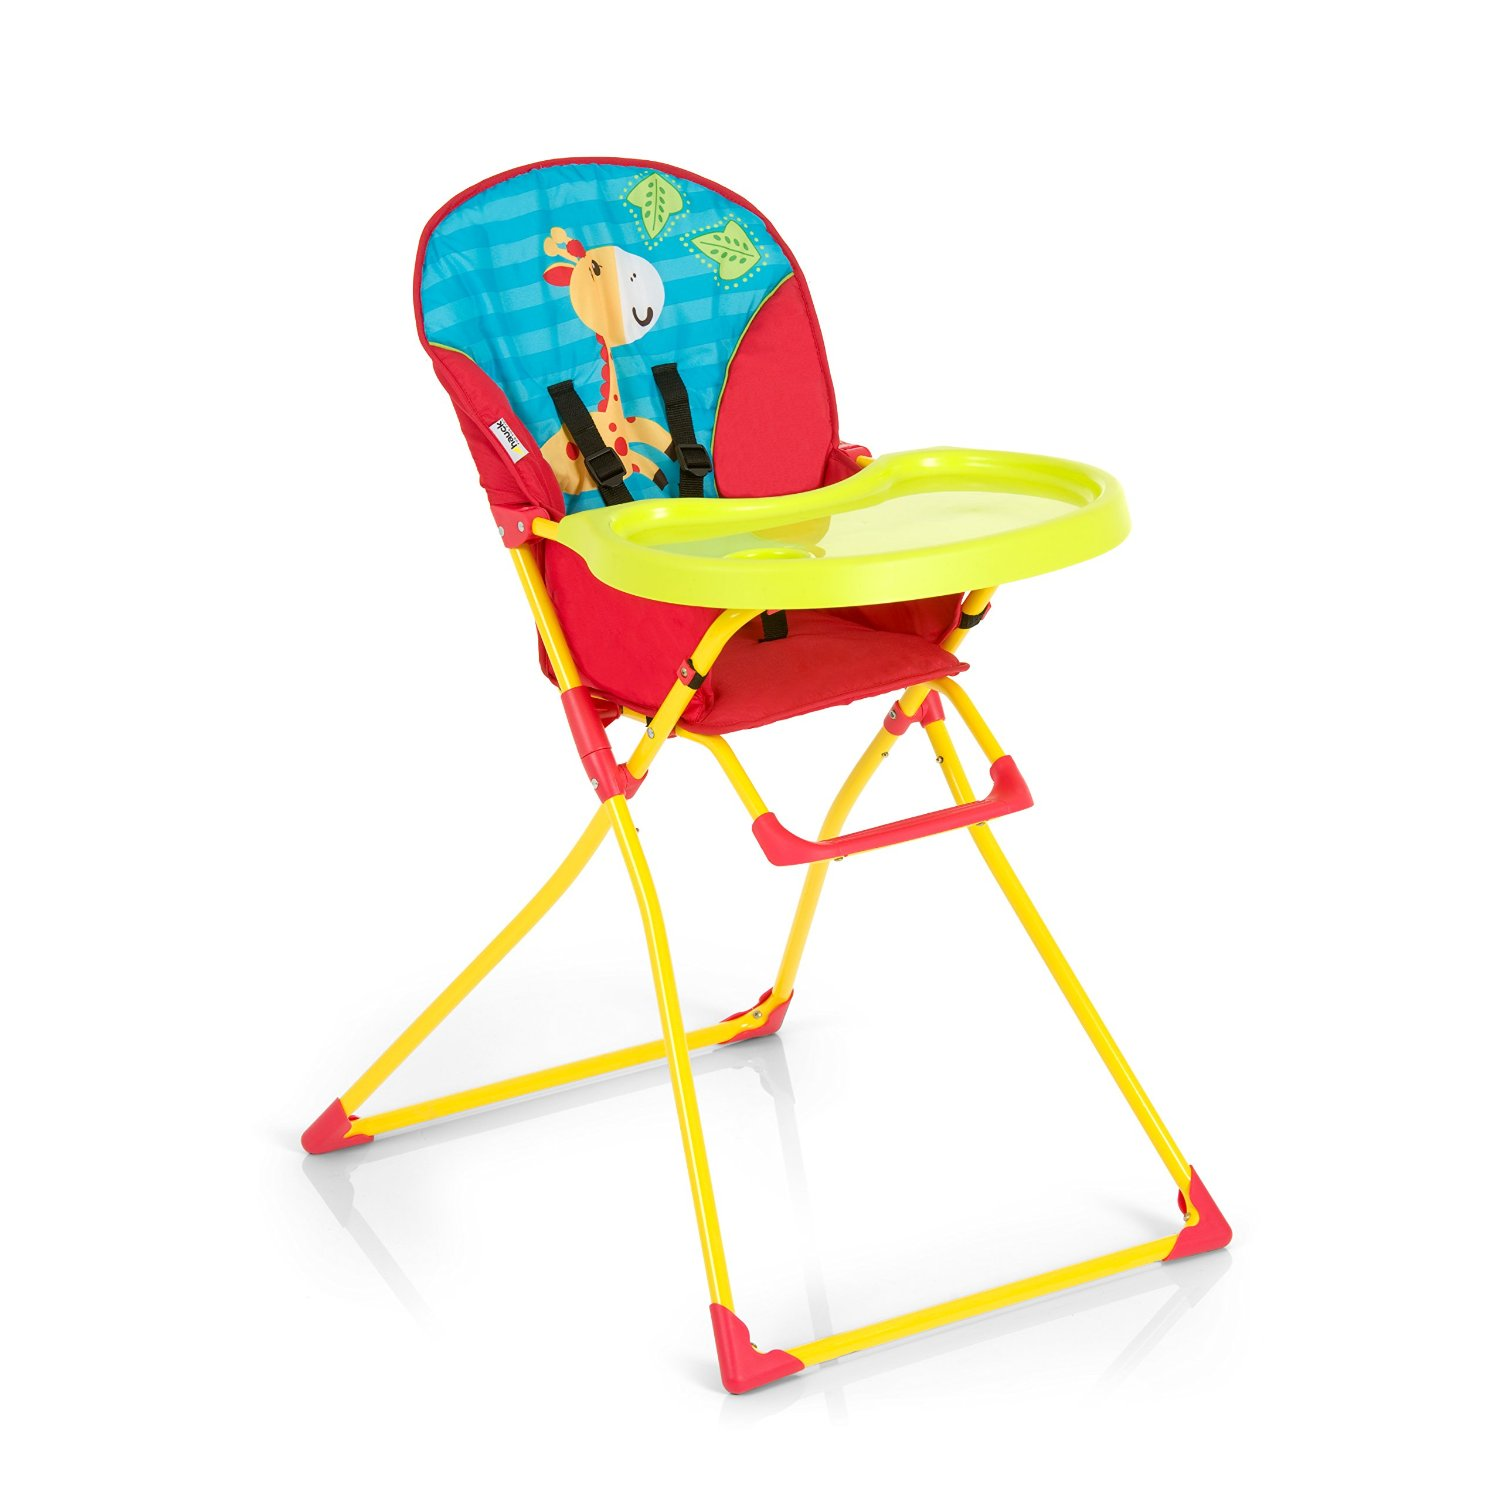 Hauck Chaise Haute - Mac Baby, rouge et turqoise